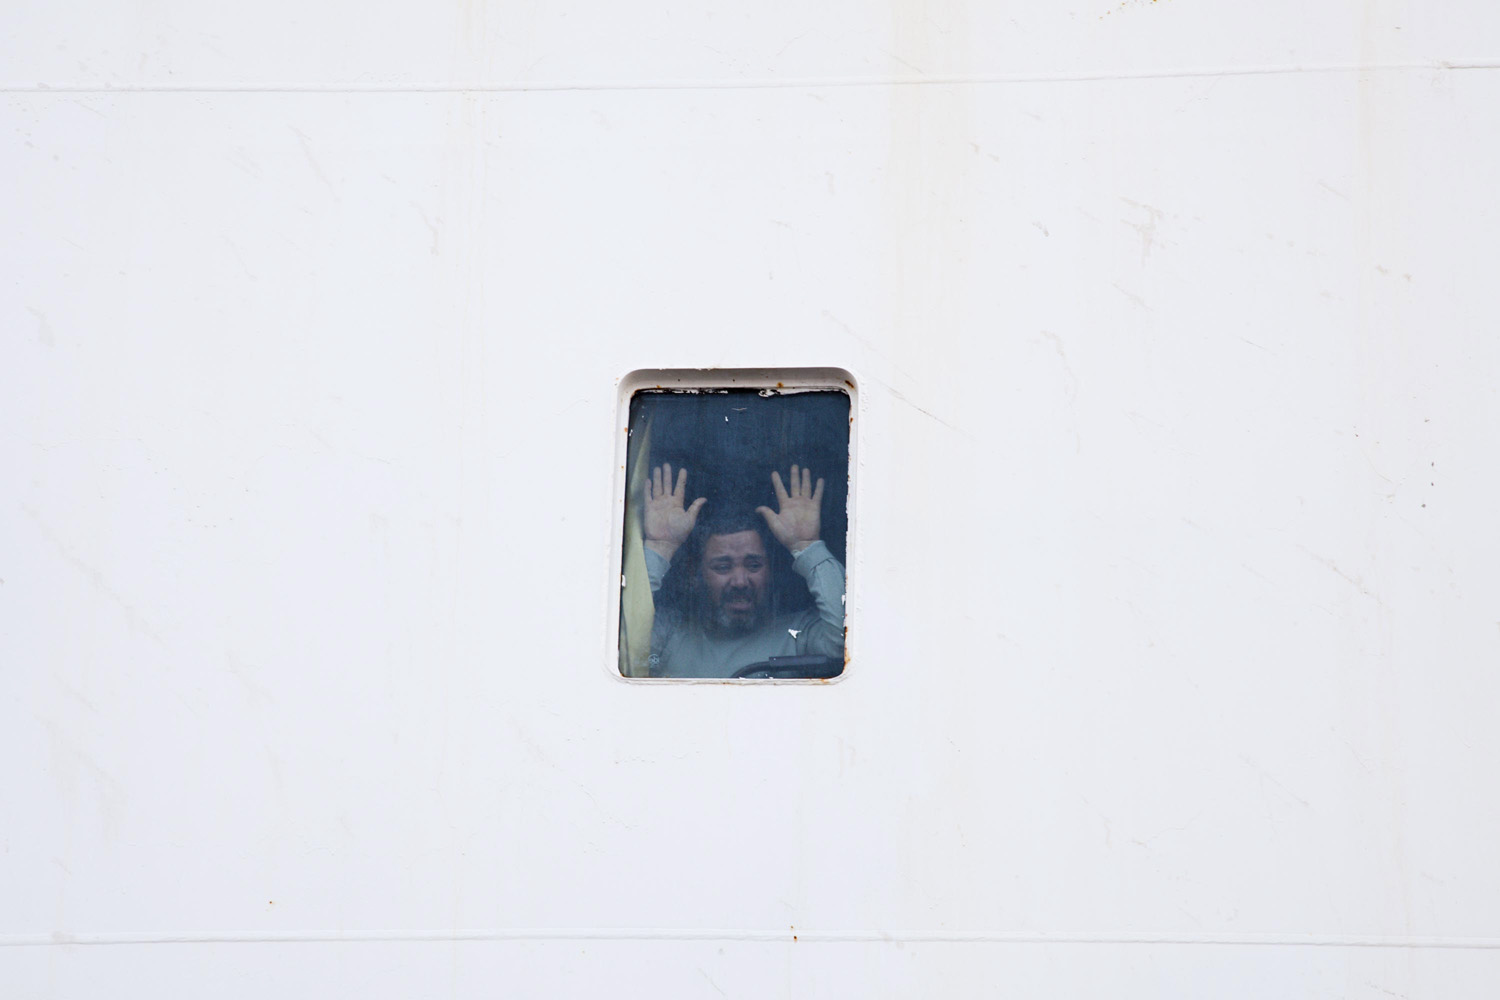 April 3, 2011. The Turkish boat, the Ankara, brings wounded Libyans from the cities of Misrata and Benghazi to Turkey.